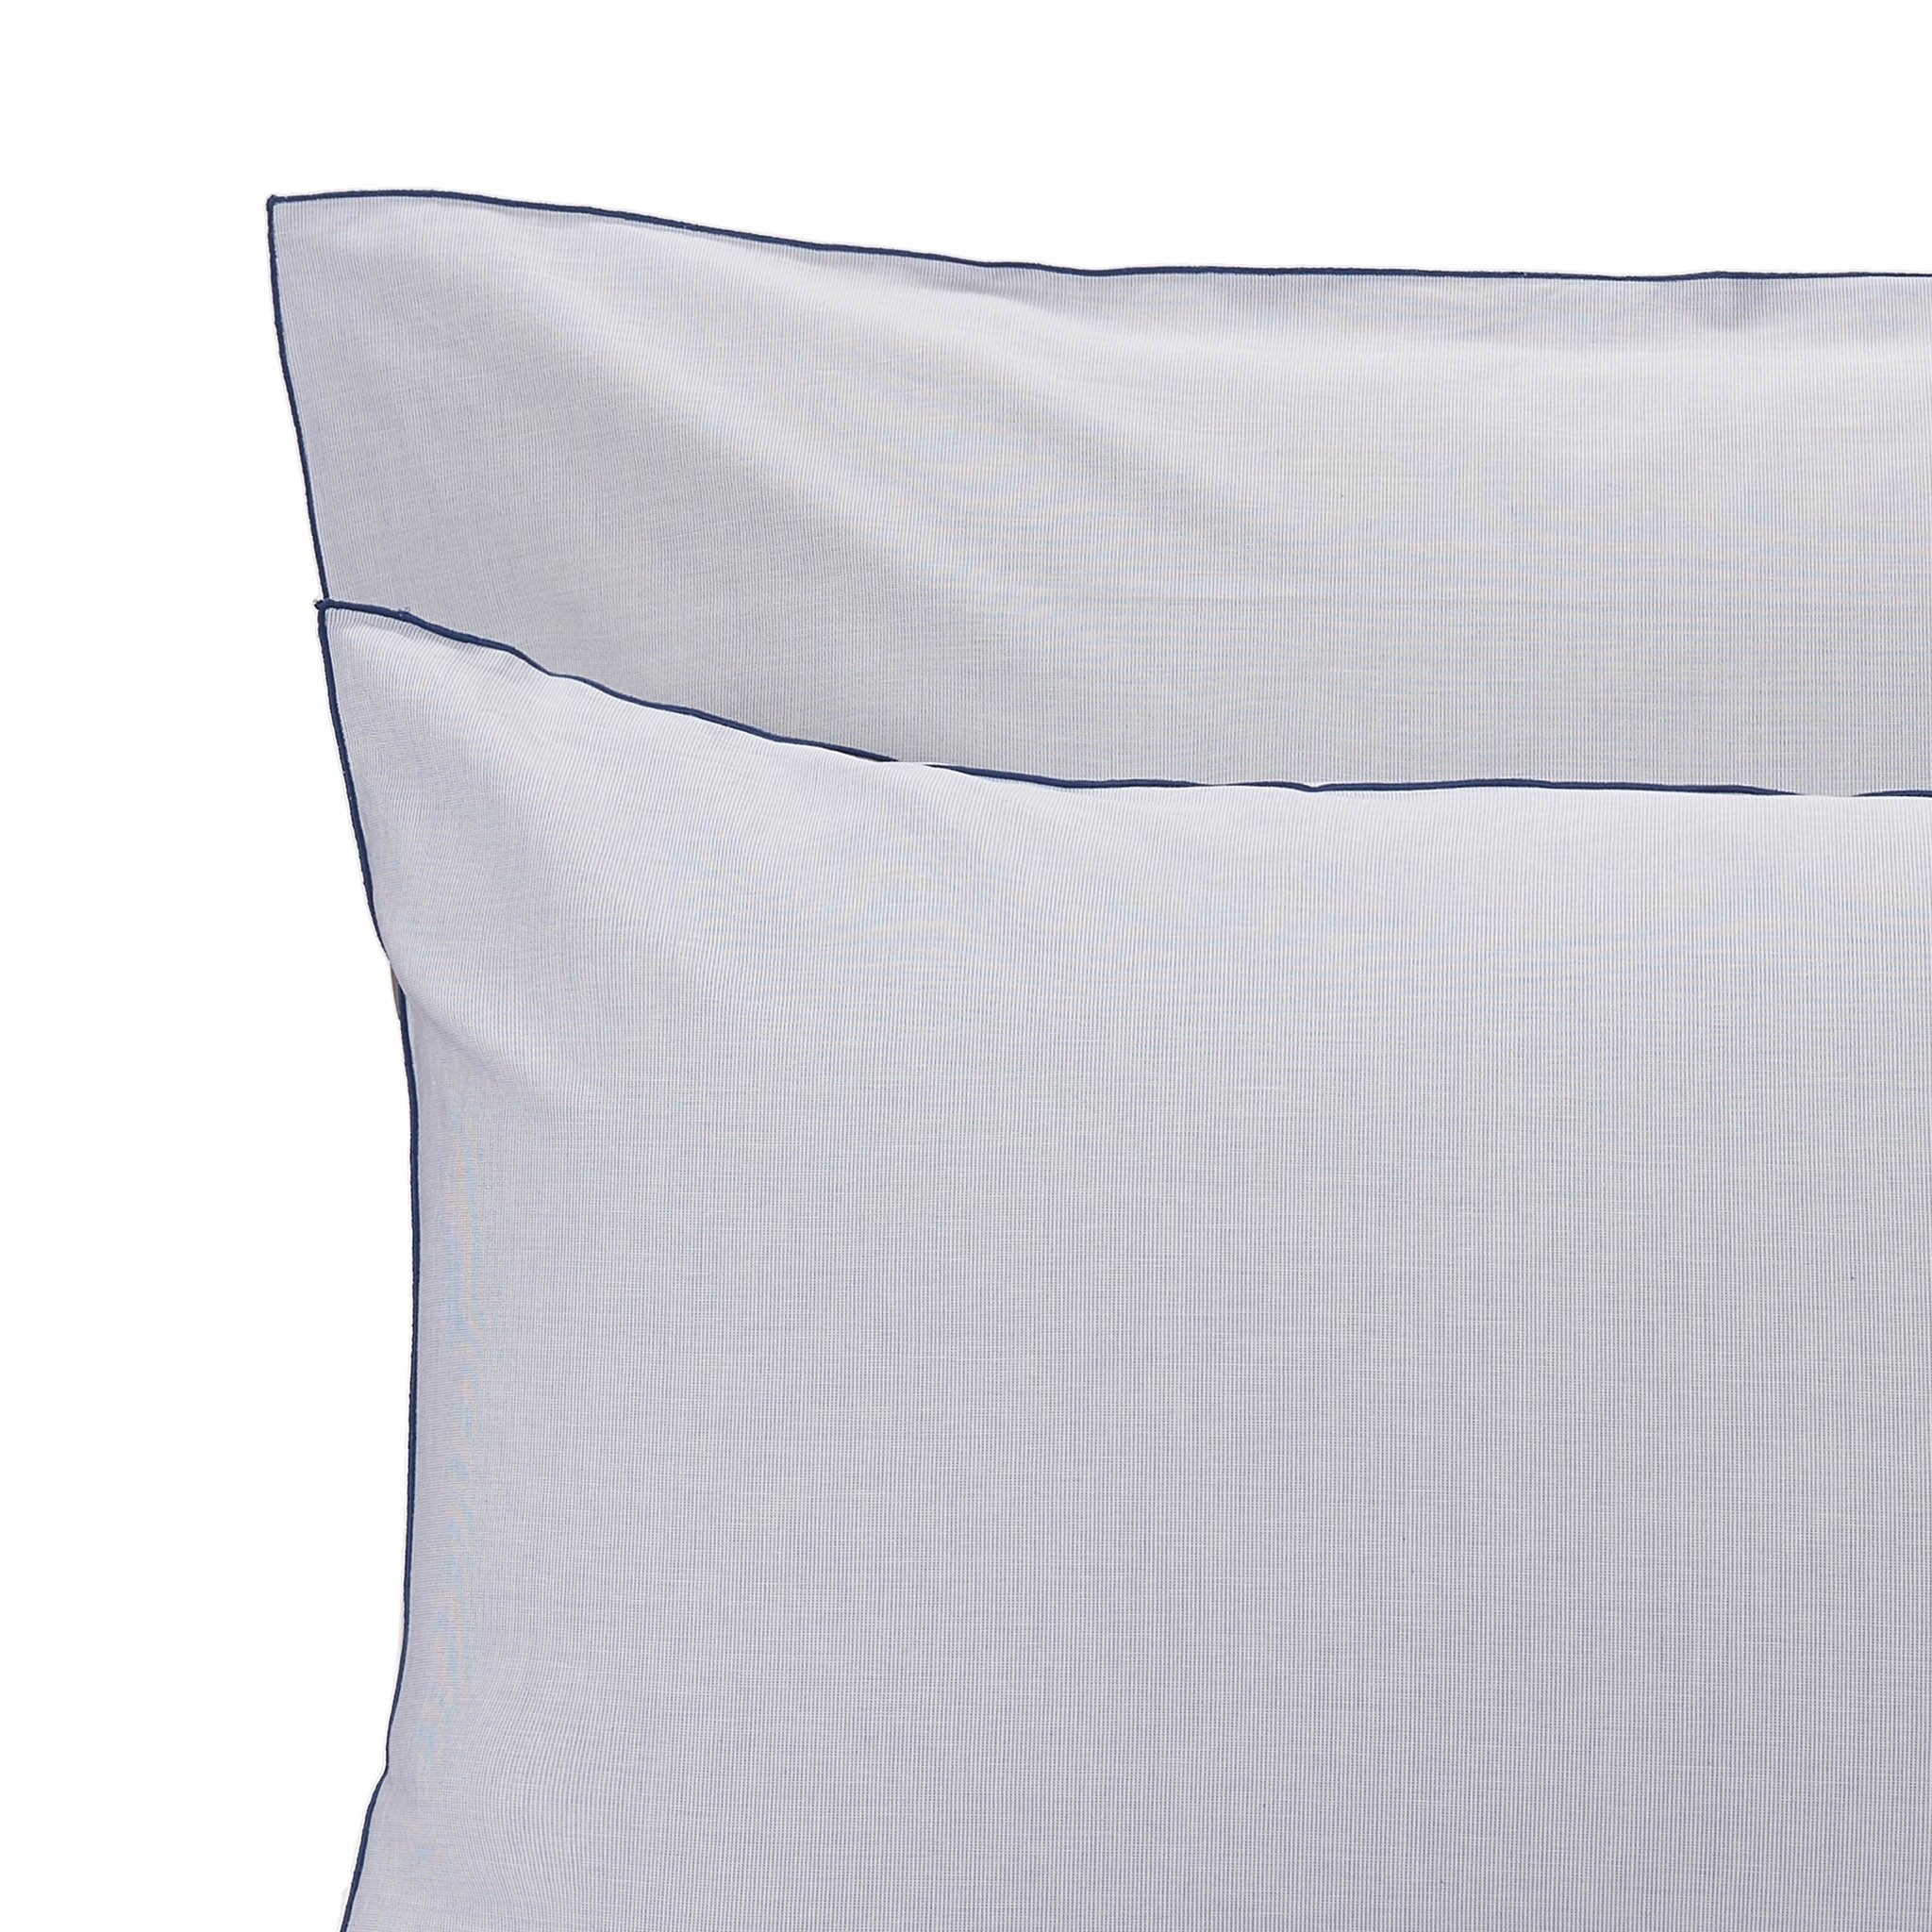 Sousa Bed Linen in blue & white | Home & Living inspiration | URBANARA